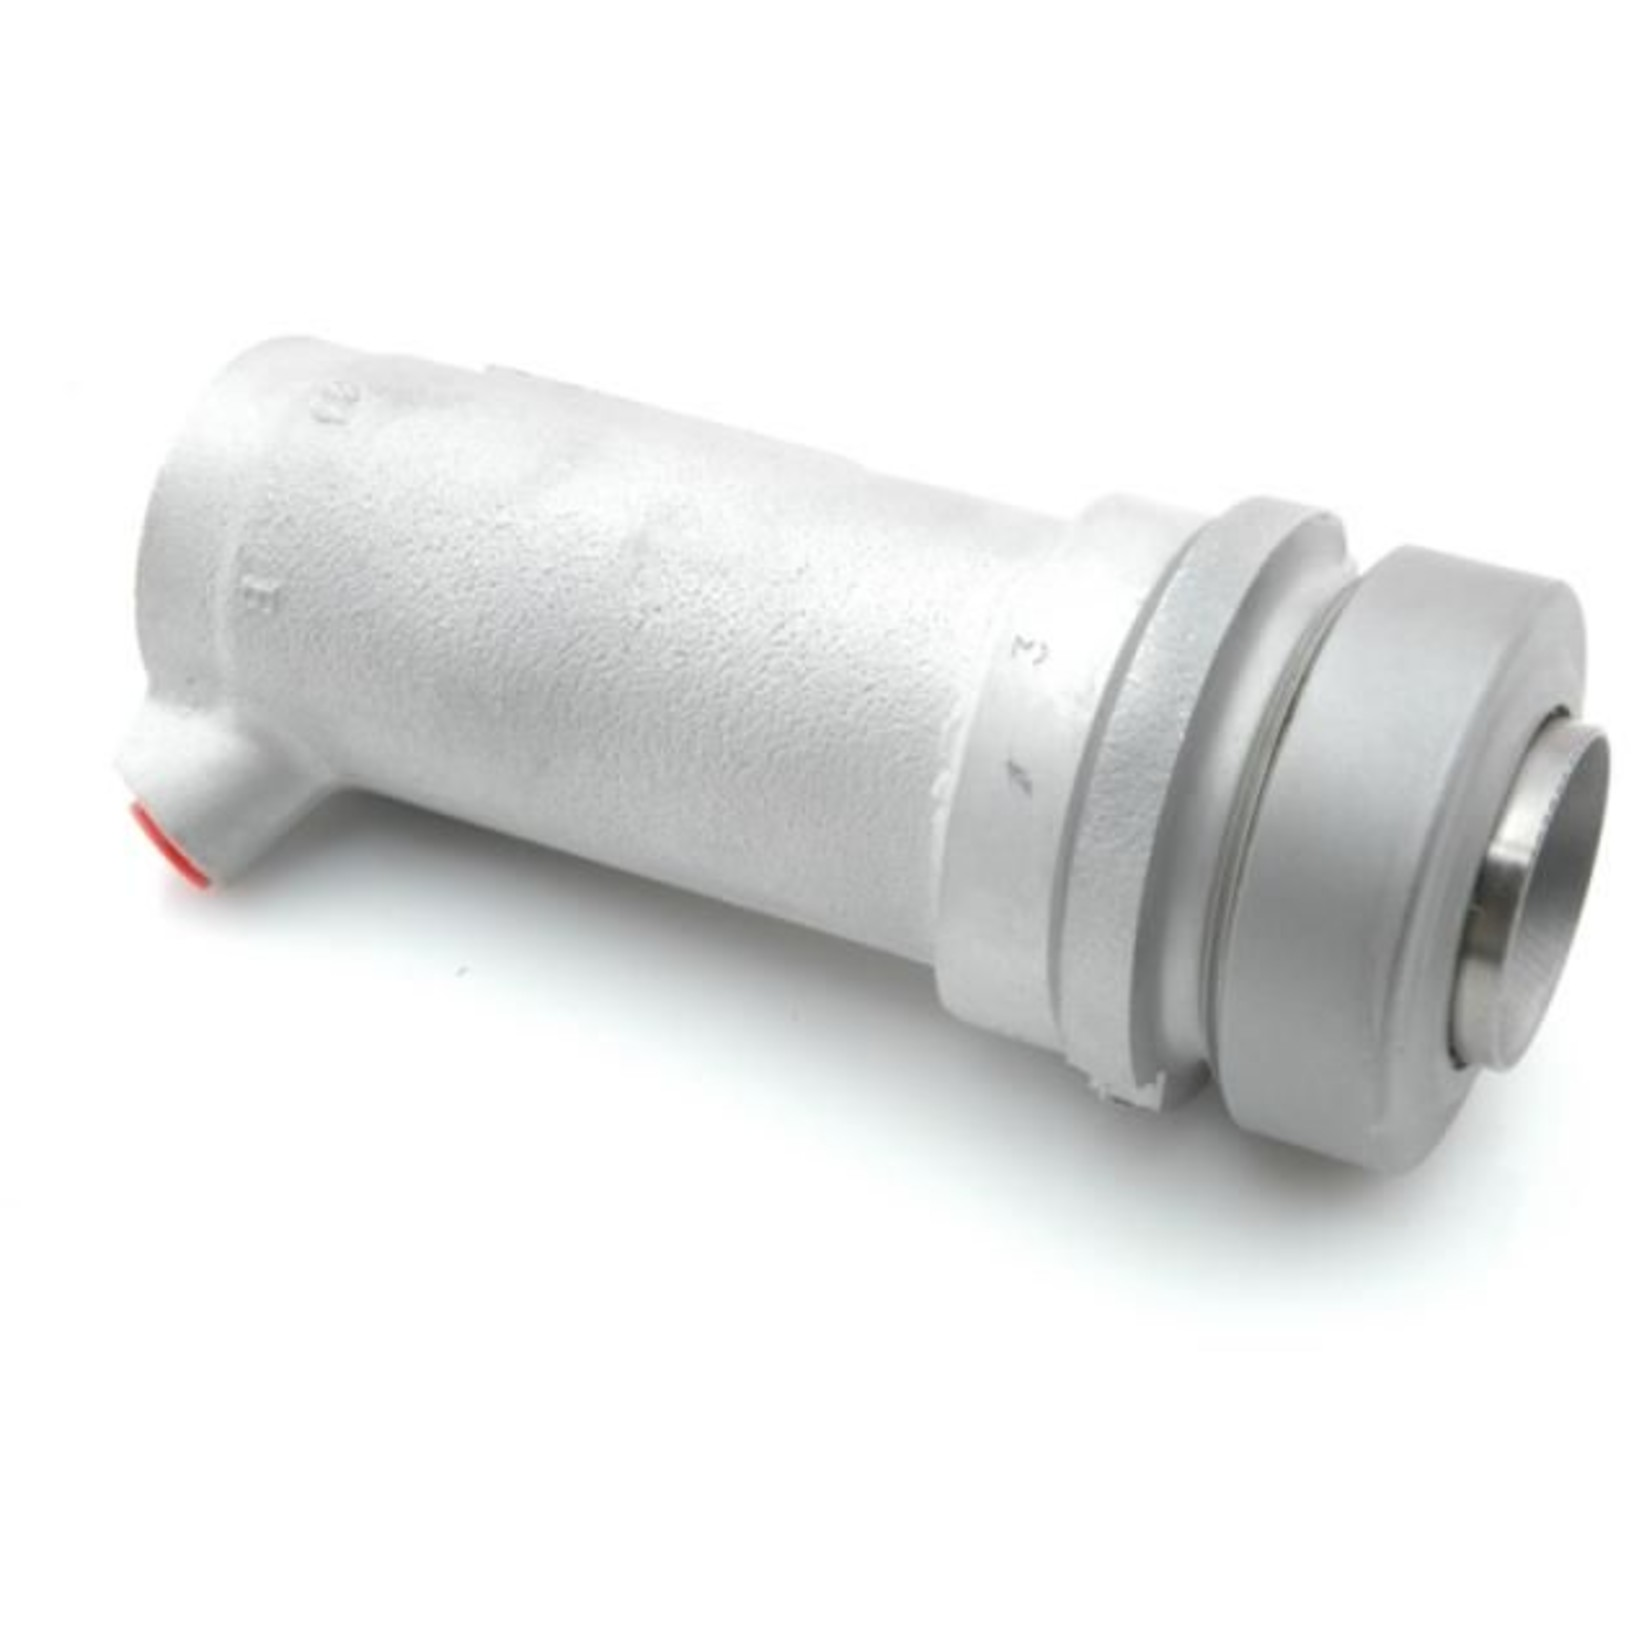 Suspension cylinder front right reconditioned LHM Nr Org: DXN434016